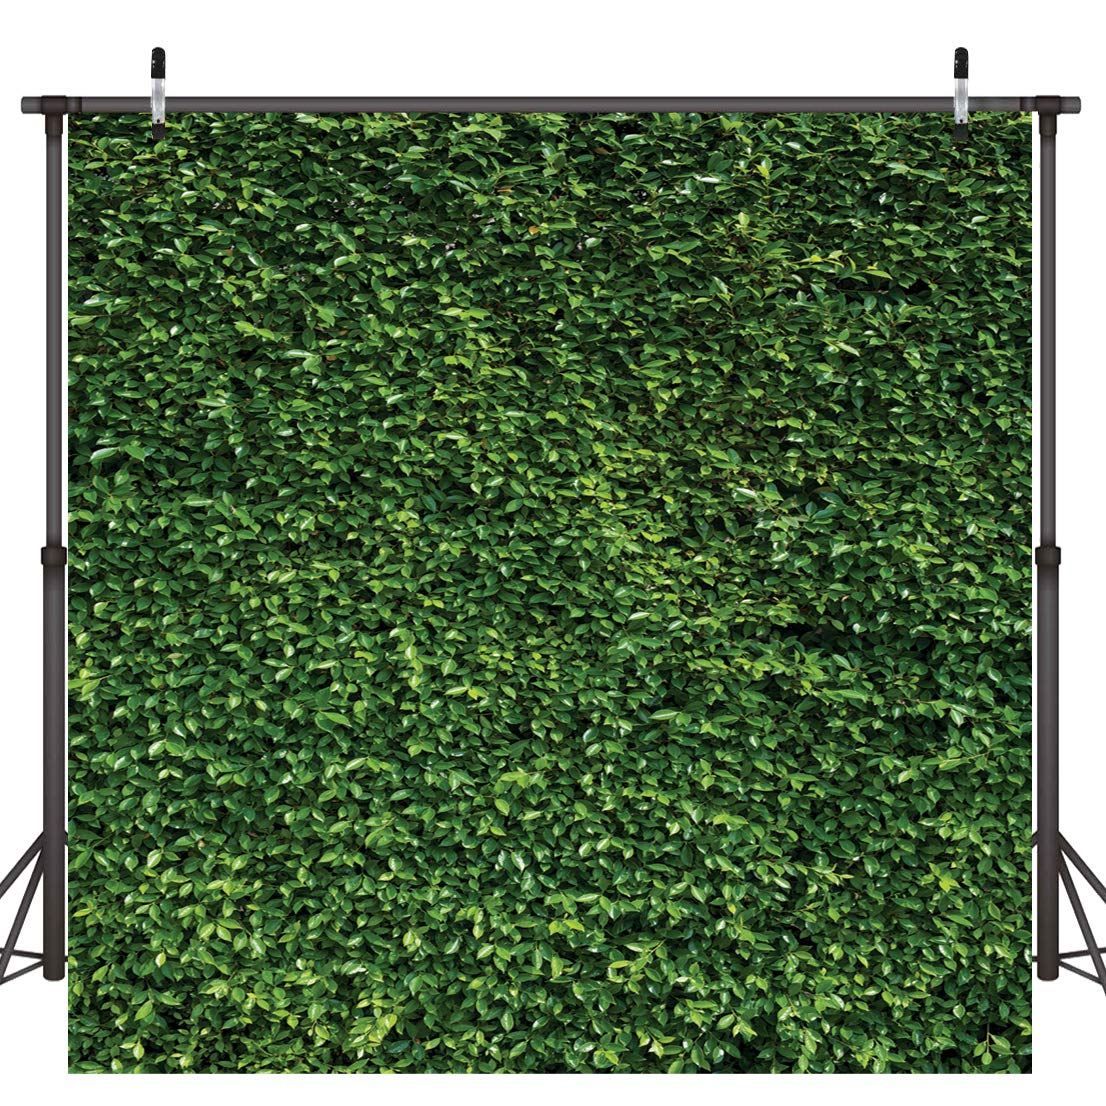 Dudaacvt 10x10FT Nature Green Leaves Backdrops Photography Wedding or Children Birthday Background Studio Props D058